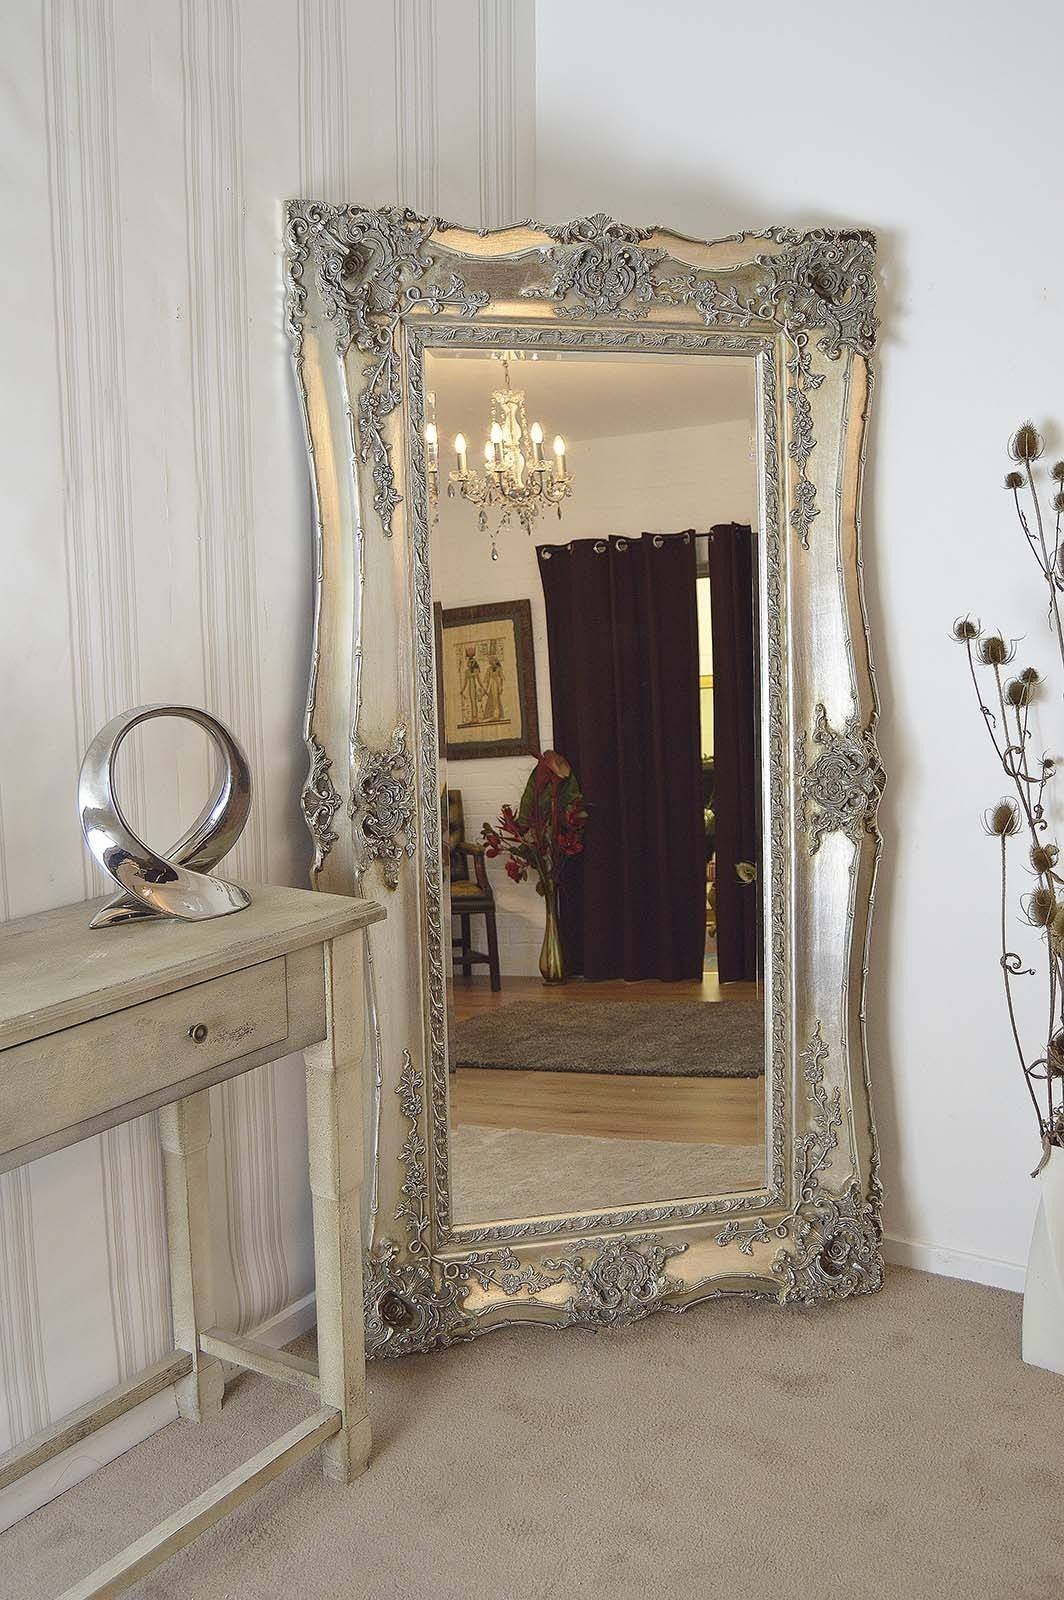 Homeware: Oval Full Length Standing Mirror | Large Floor Mirrors Throughout Extra Large Free Standing Mirrors (View 20 of 25)